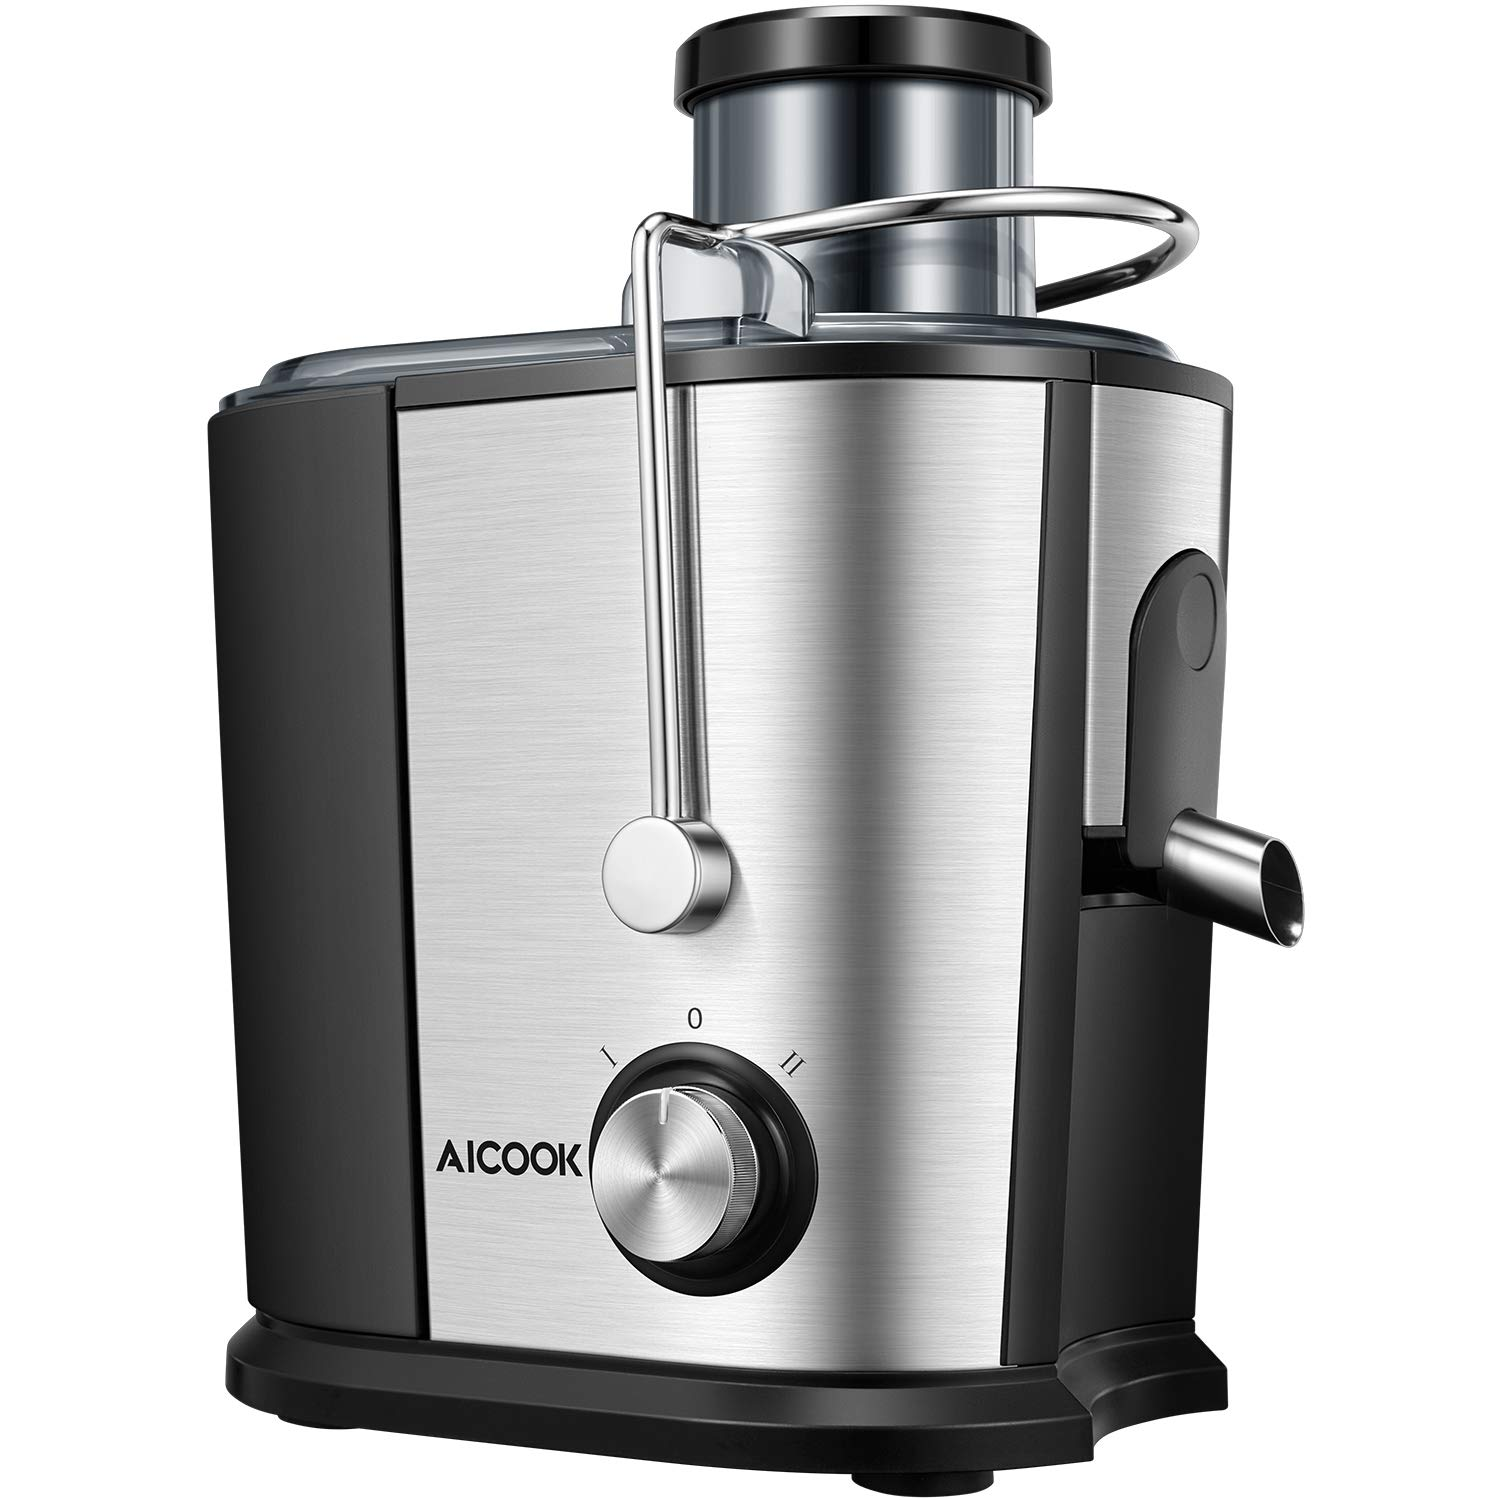 Juicer Juice Extractor, Aicook Wide Mouth Juicer Machine BPA-Free, Dual Speed Setting Centrifugal Juicer with Anti-drip Function, Stainless Steel Compact  Juicers for Whole Fruits and Vegetables